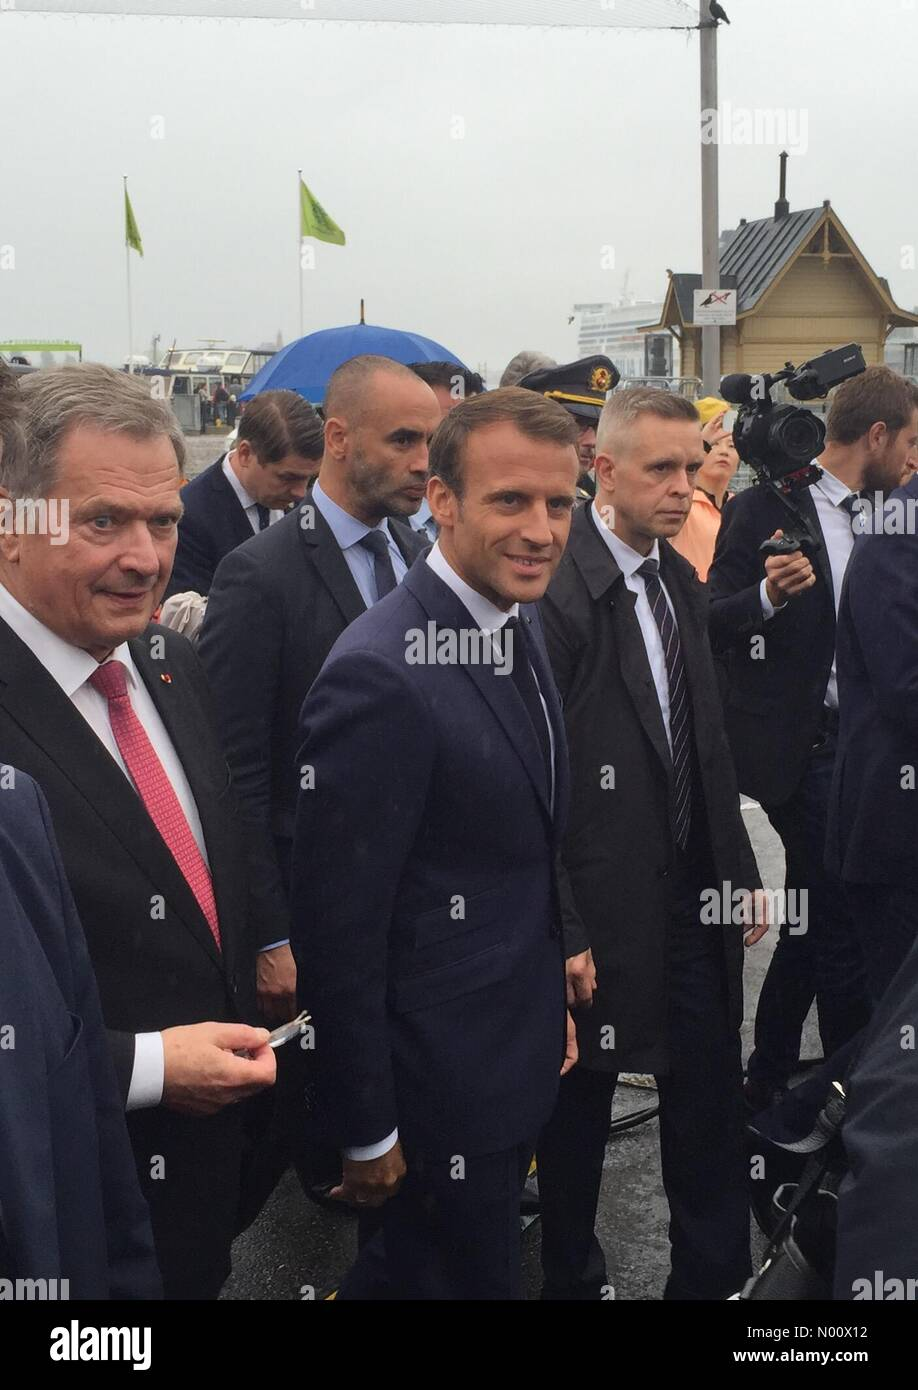 Kauppatori, Helsinki, Finland. 30th August 2018. French President Emmanuel Macron and Finnish President Sauli Niinistö had a walk at market place after discussing military partnership issues. Credit: Heini Kettunen/StockimoNews/Alamy Live News - Stock Image